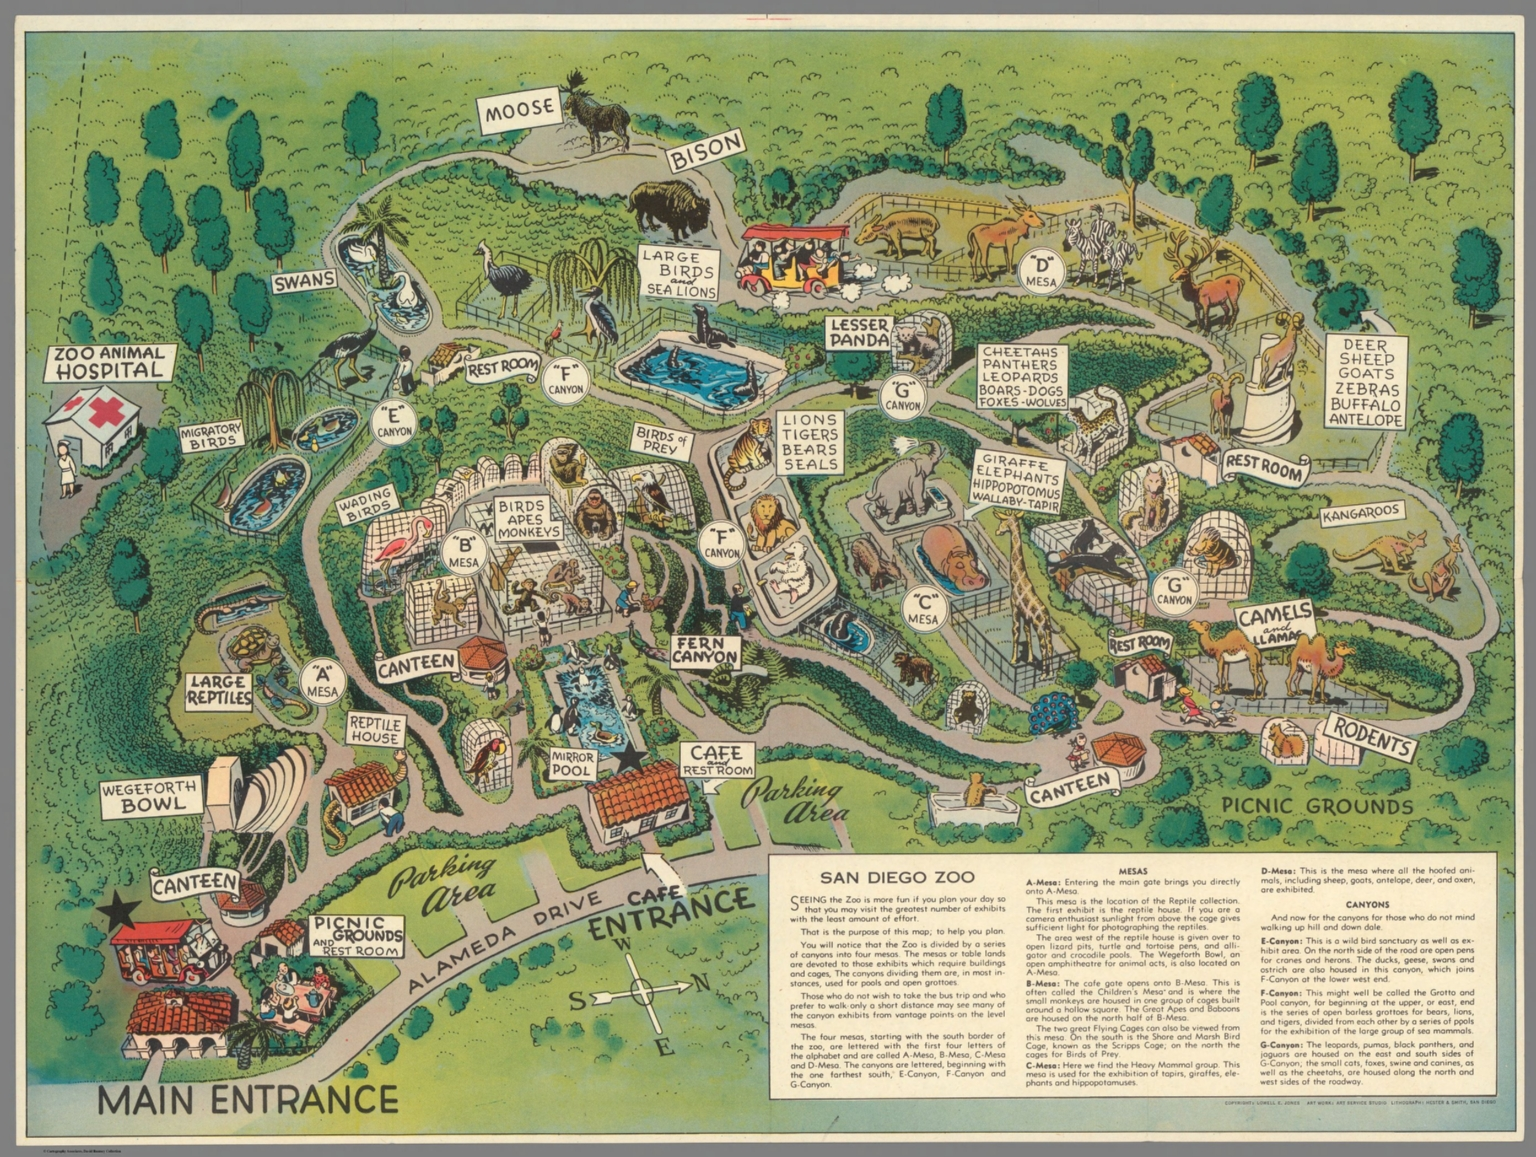 San Diego Zoo Map San Diego Zoo.   David Rumsey Historical Map Collection San Diego Zoo Map